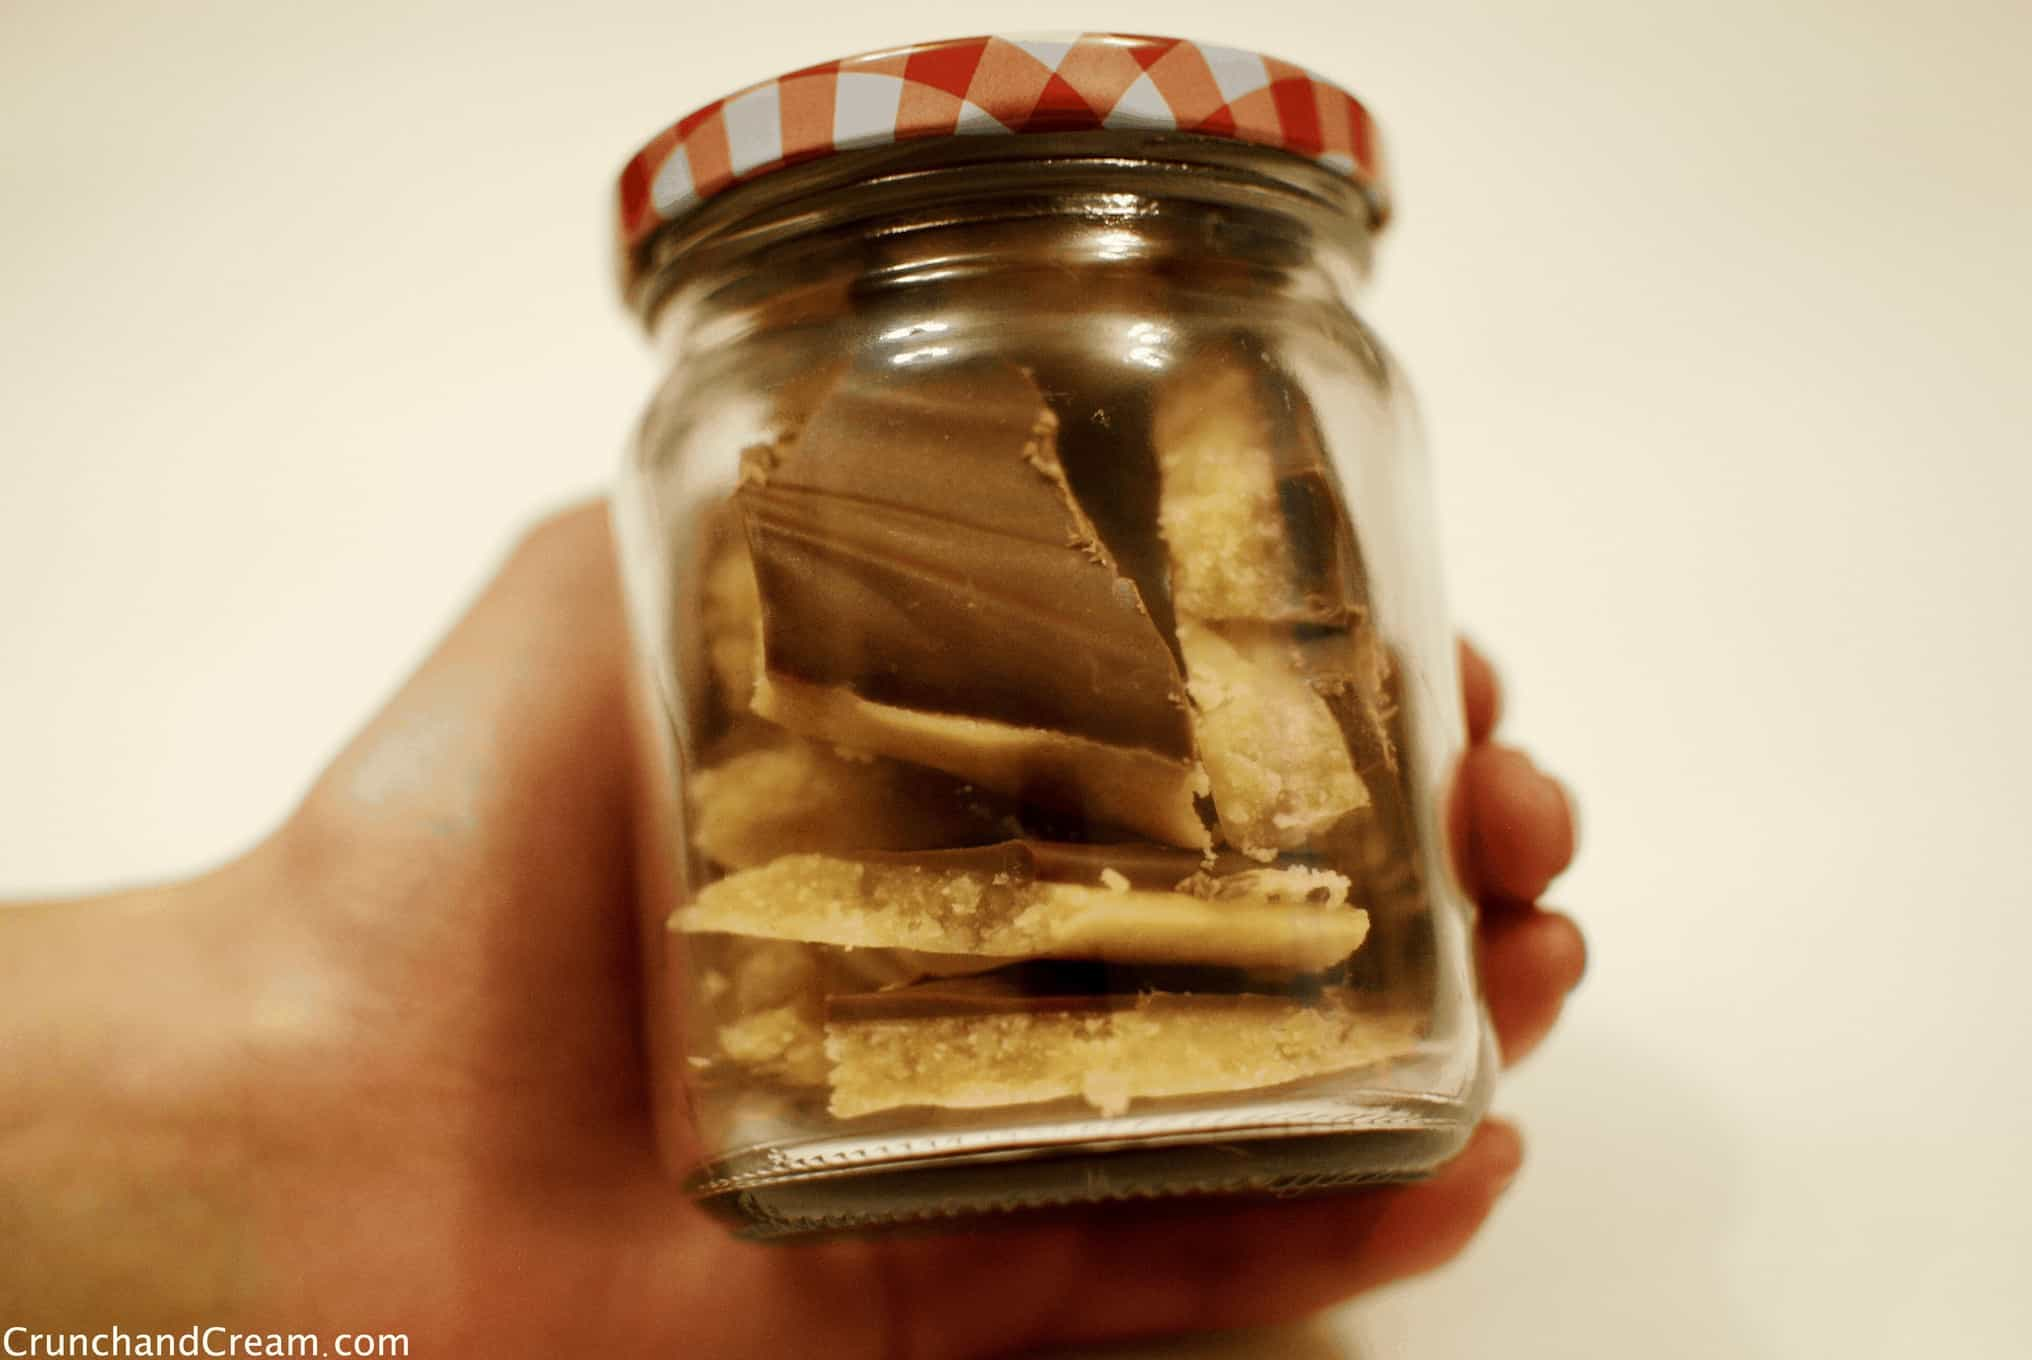 Hand holding a glass mason jar jar full of shards of caramel topped with a thin layer of milk chocolate.